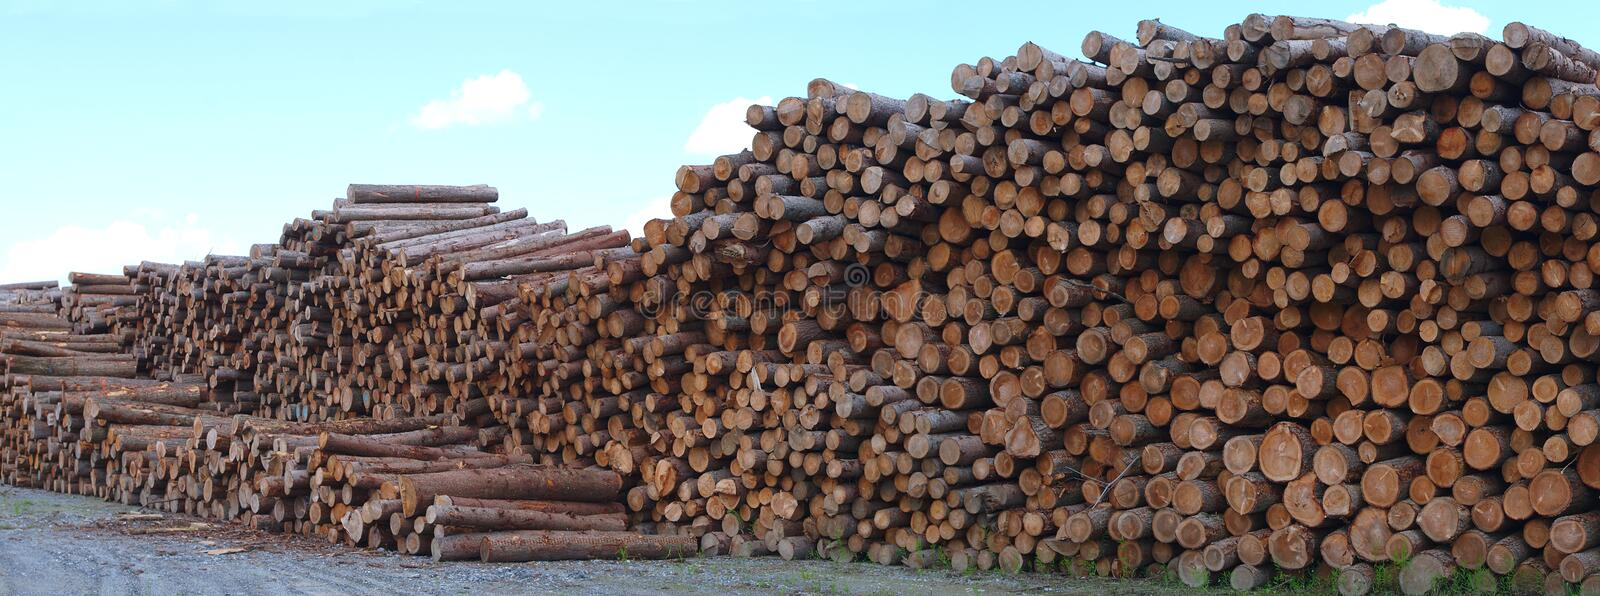 Lumber yard wood stack timber construction lumbering forestry cut. Lumber yard business timber stacked forest industry environment lumbering wood stock photography